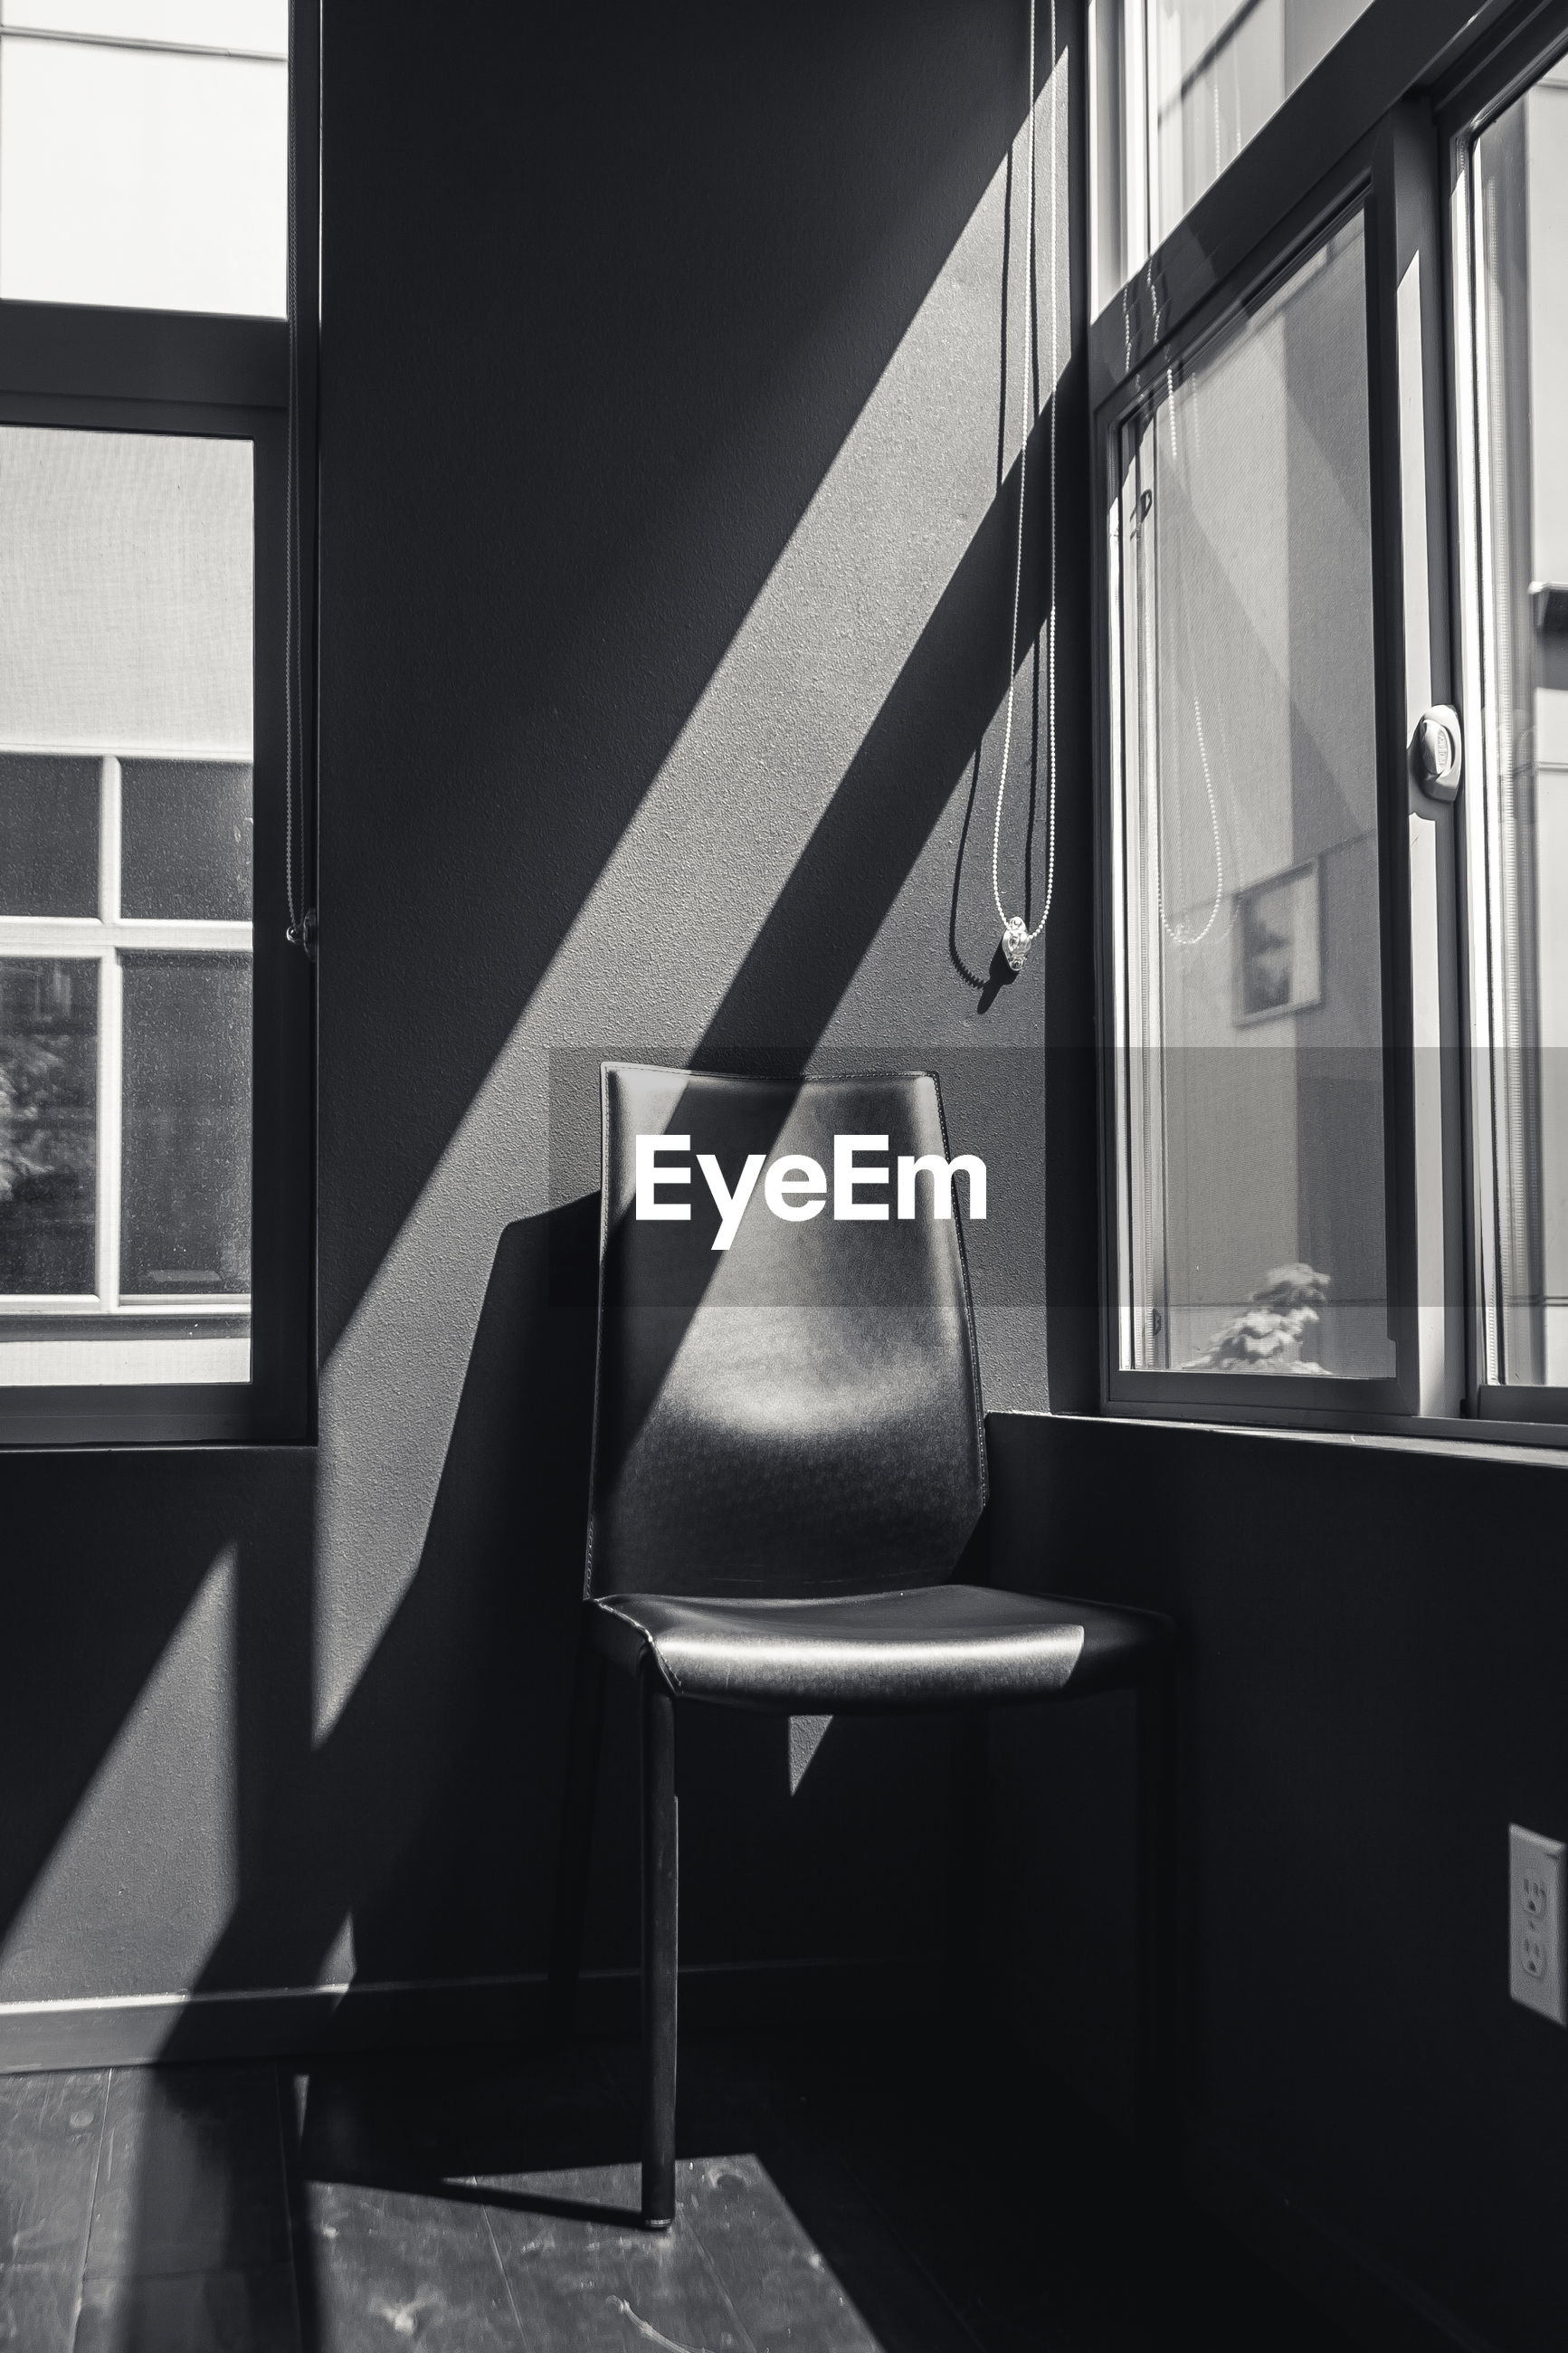 Empty chair by window at home